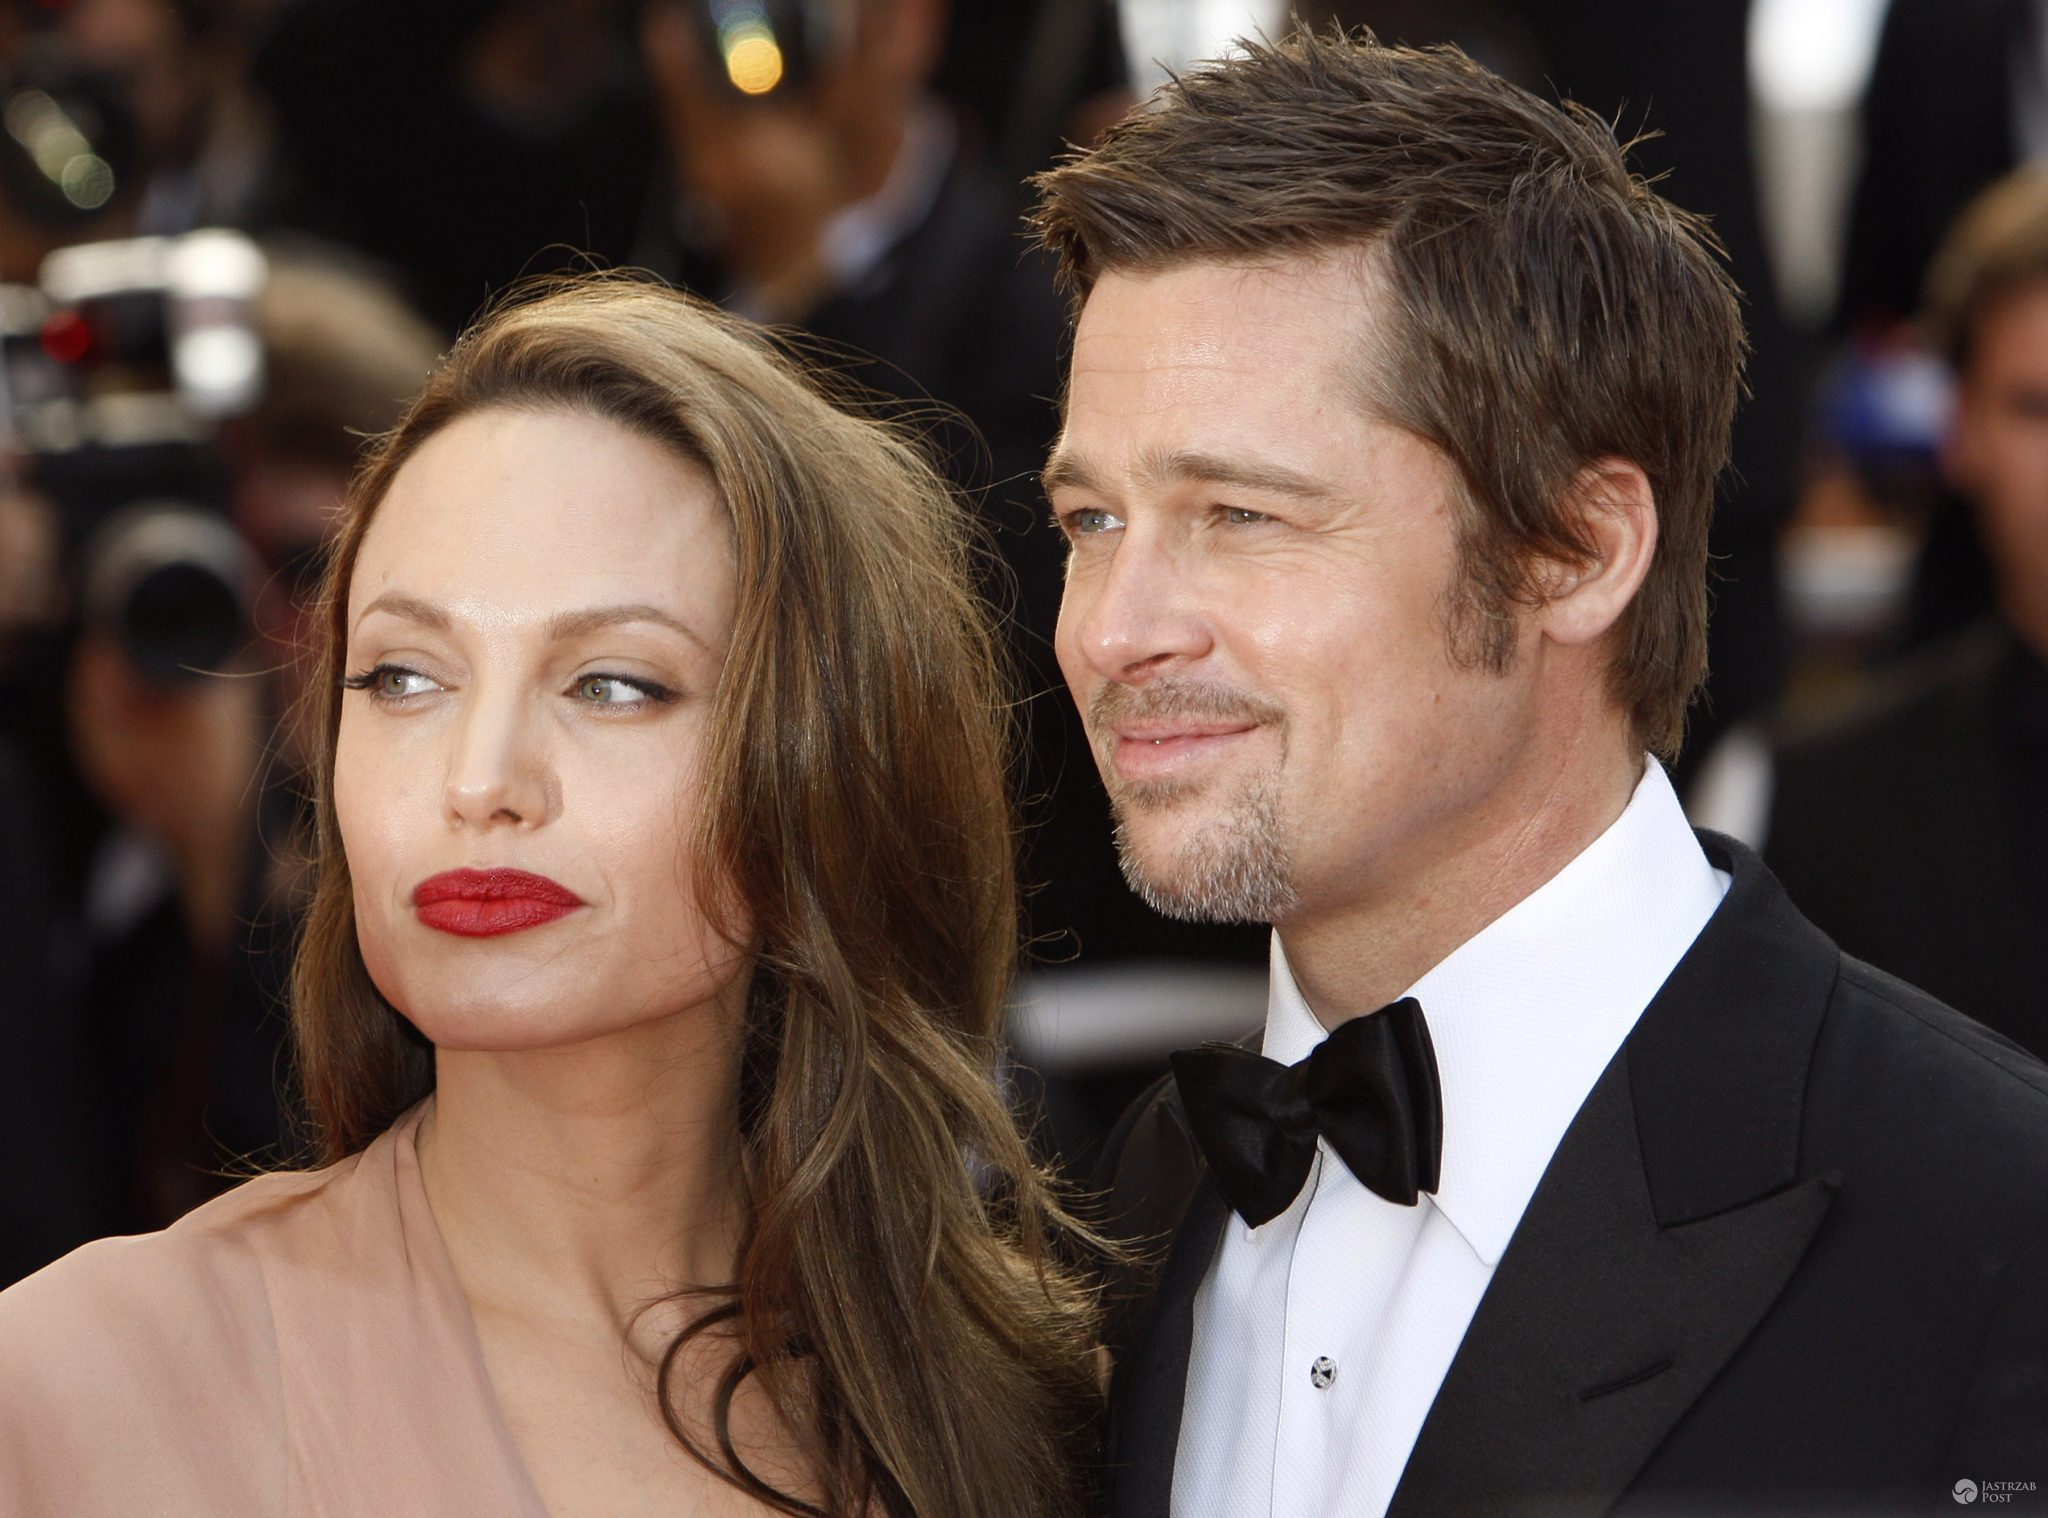 "May 20, 2009 Cannes, France Angelina Jolie and Brad Pitt ""Inglourious Basterds"" Premiere at the 62nd Annual Cannes Film Festival held at the Palais des Festival © Cannes / AFF-USA.COM"